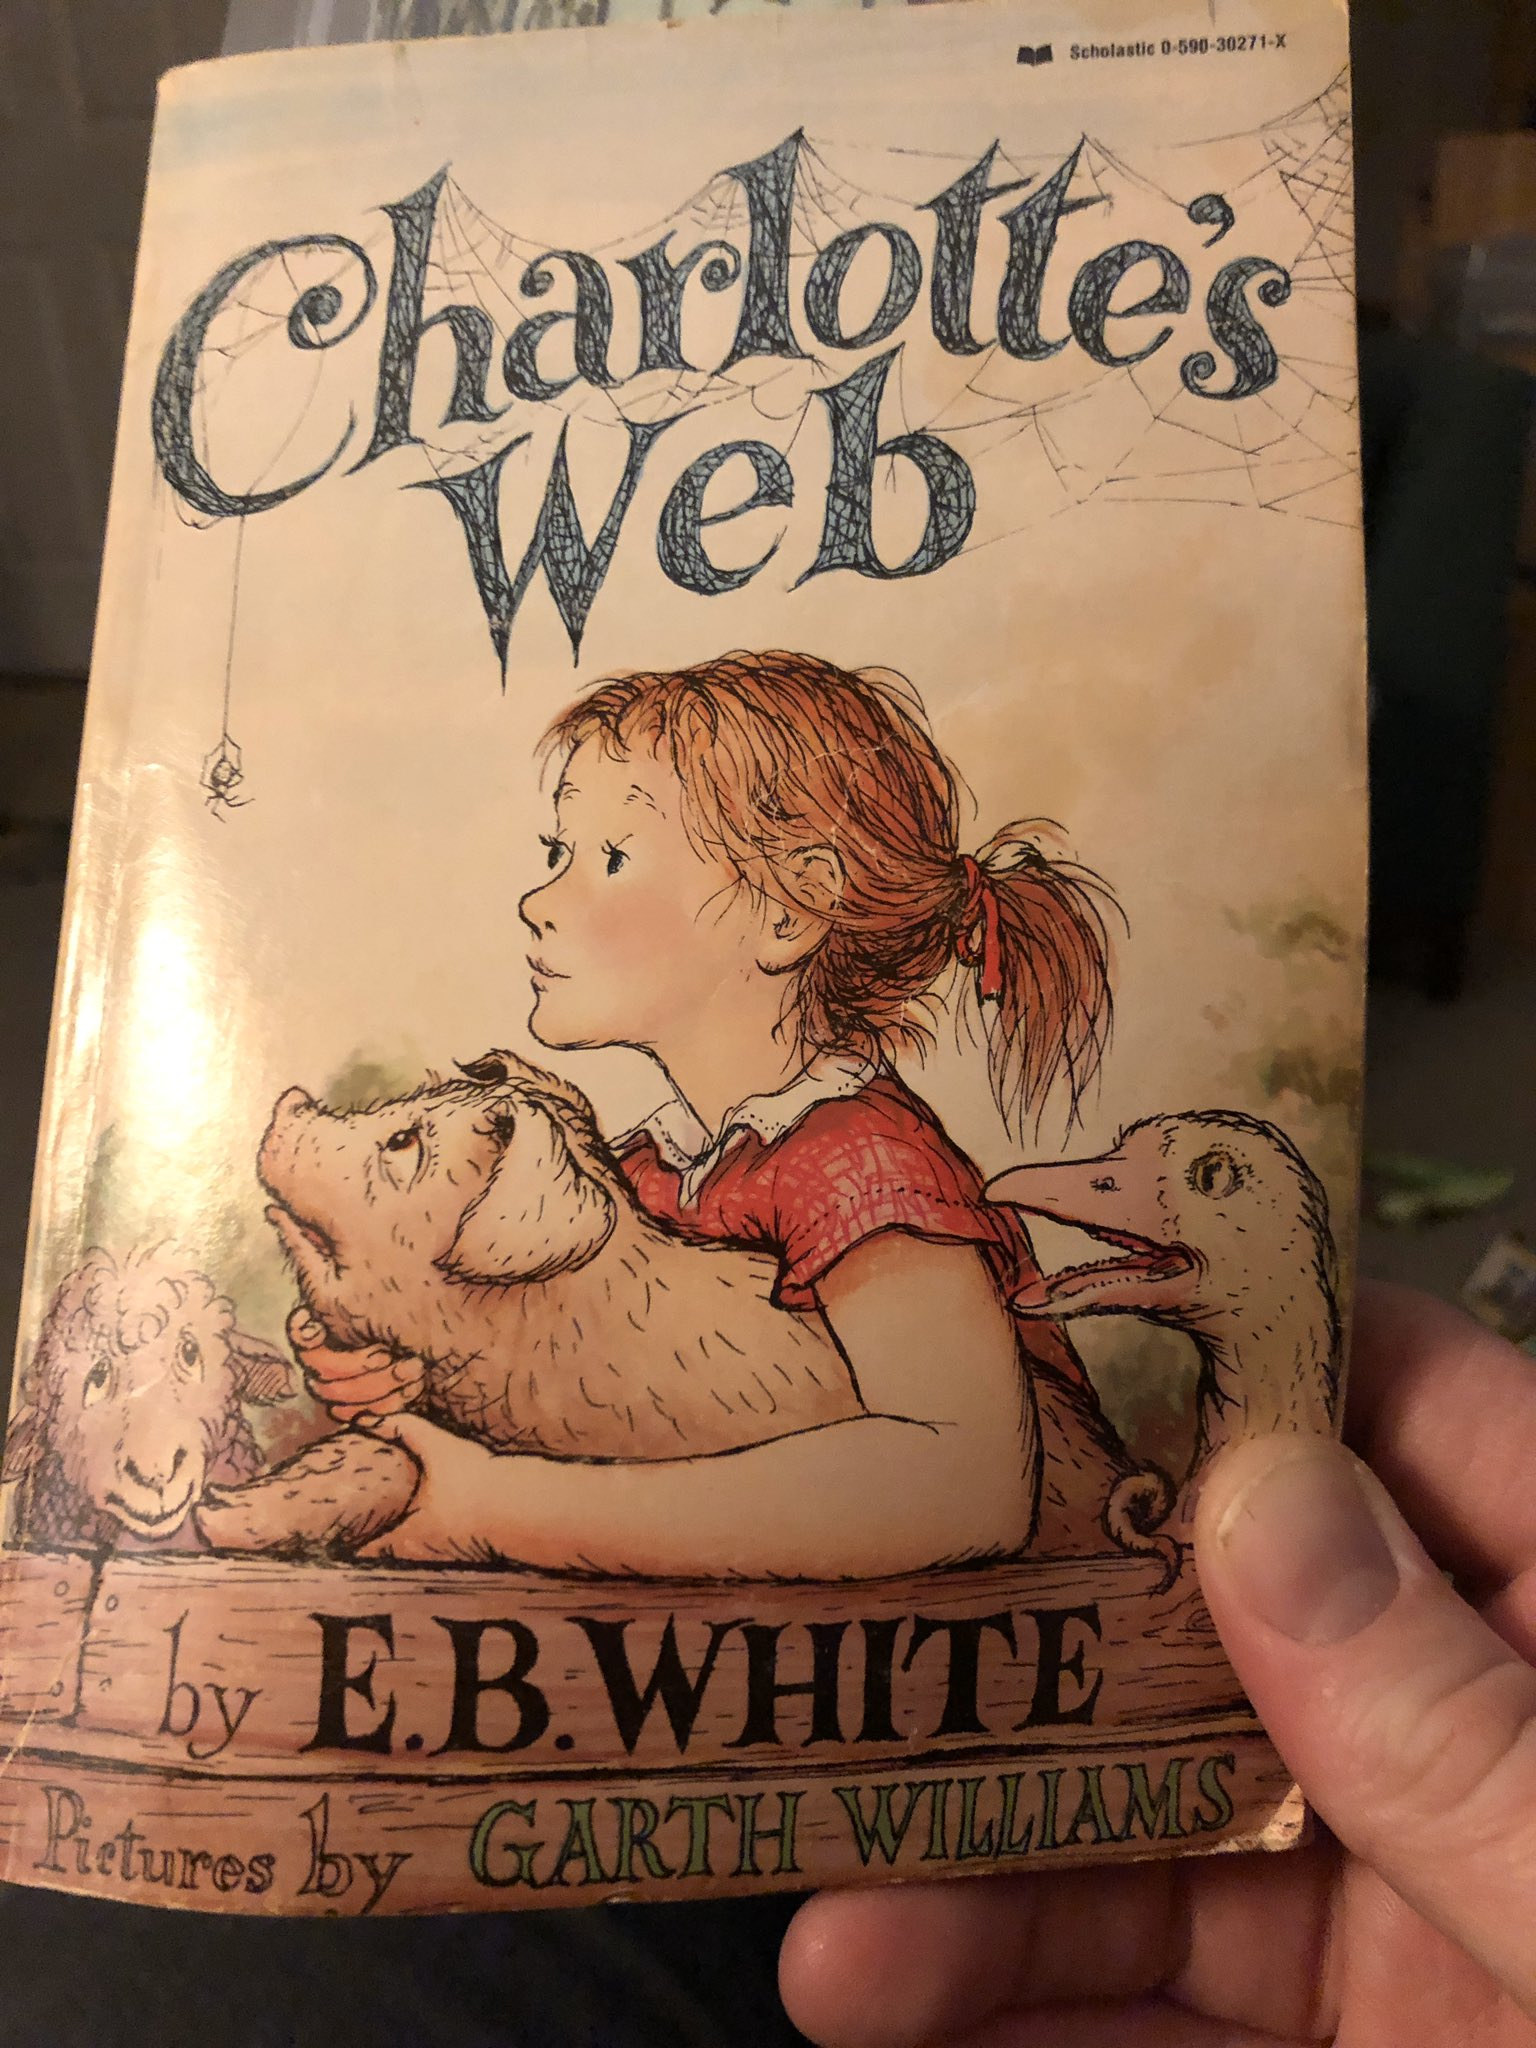 Holding Charlotte's Web in my hand